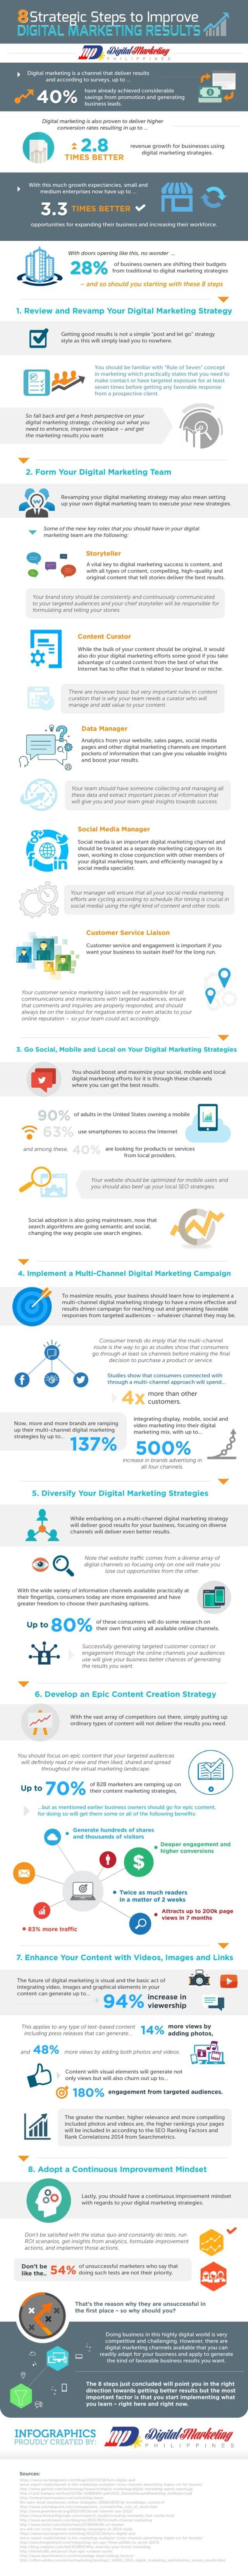 How to Improve Your Digital Marketing Results